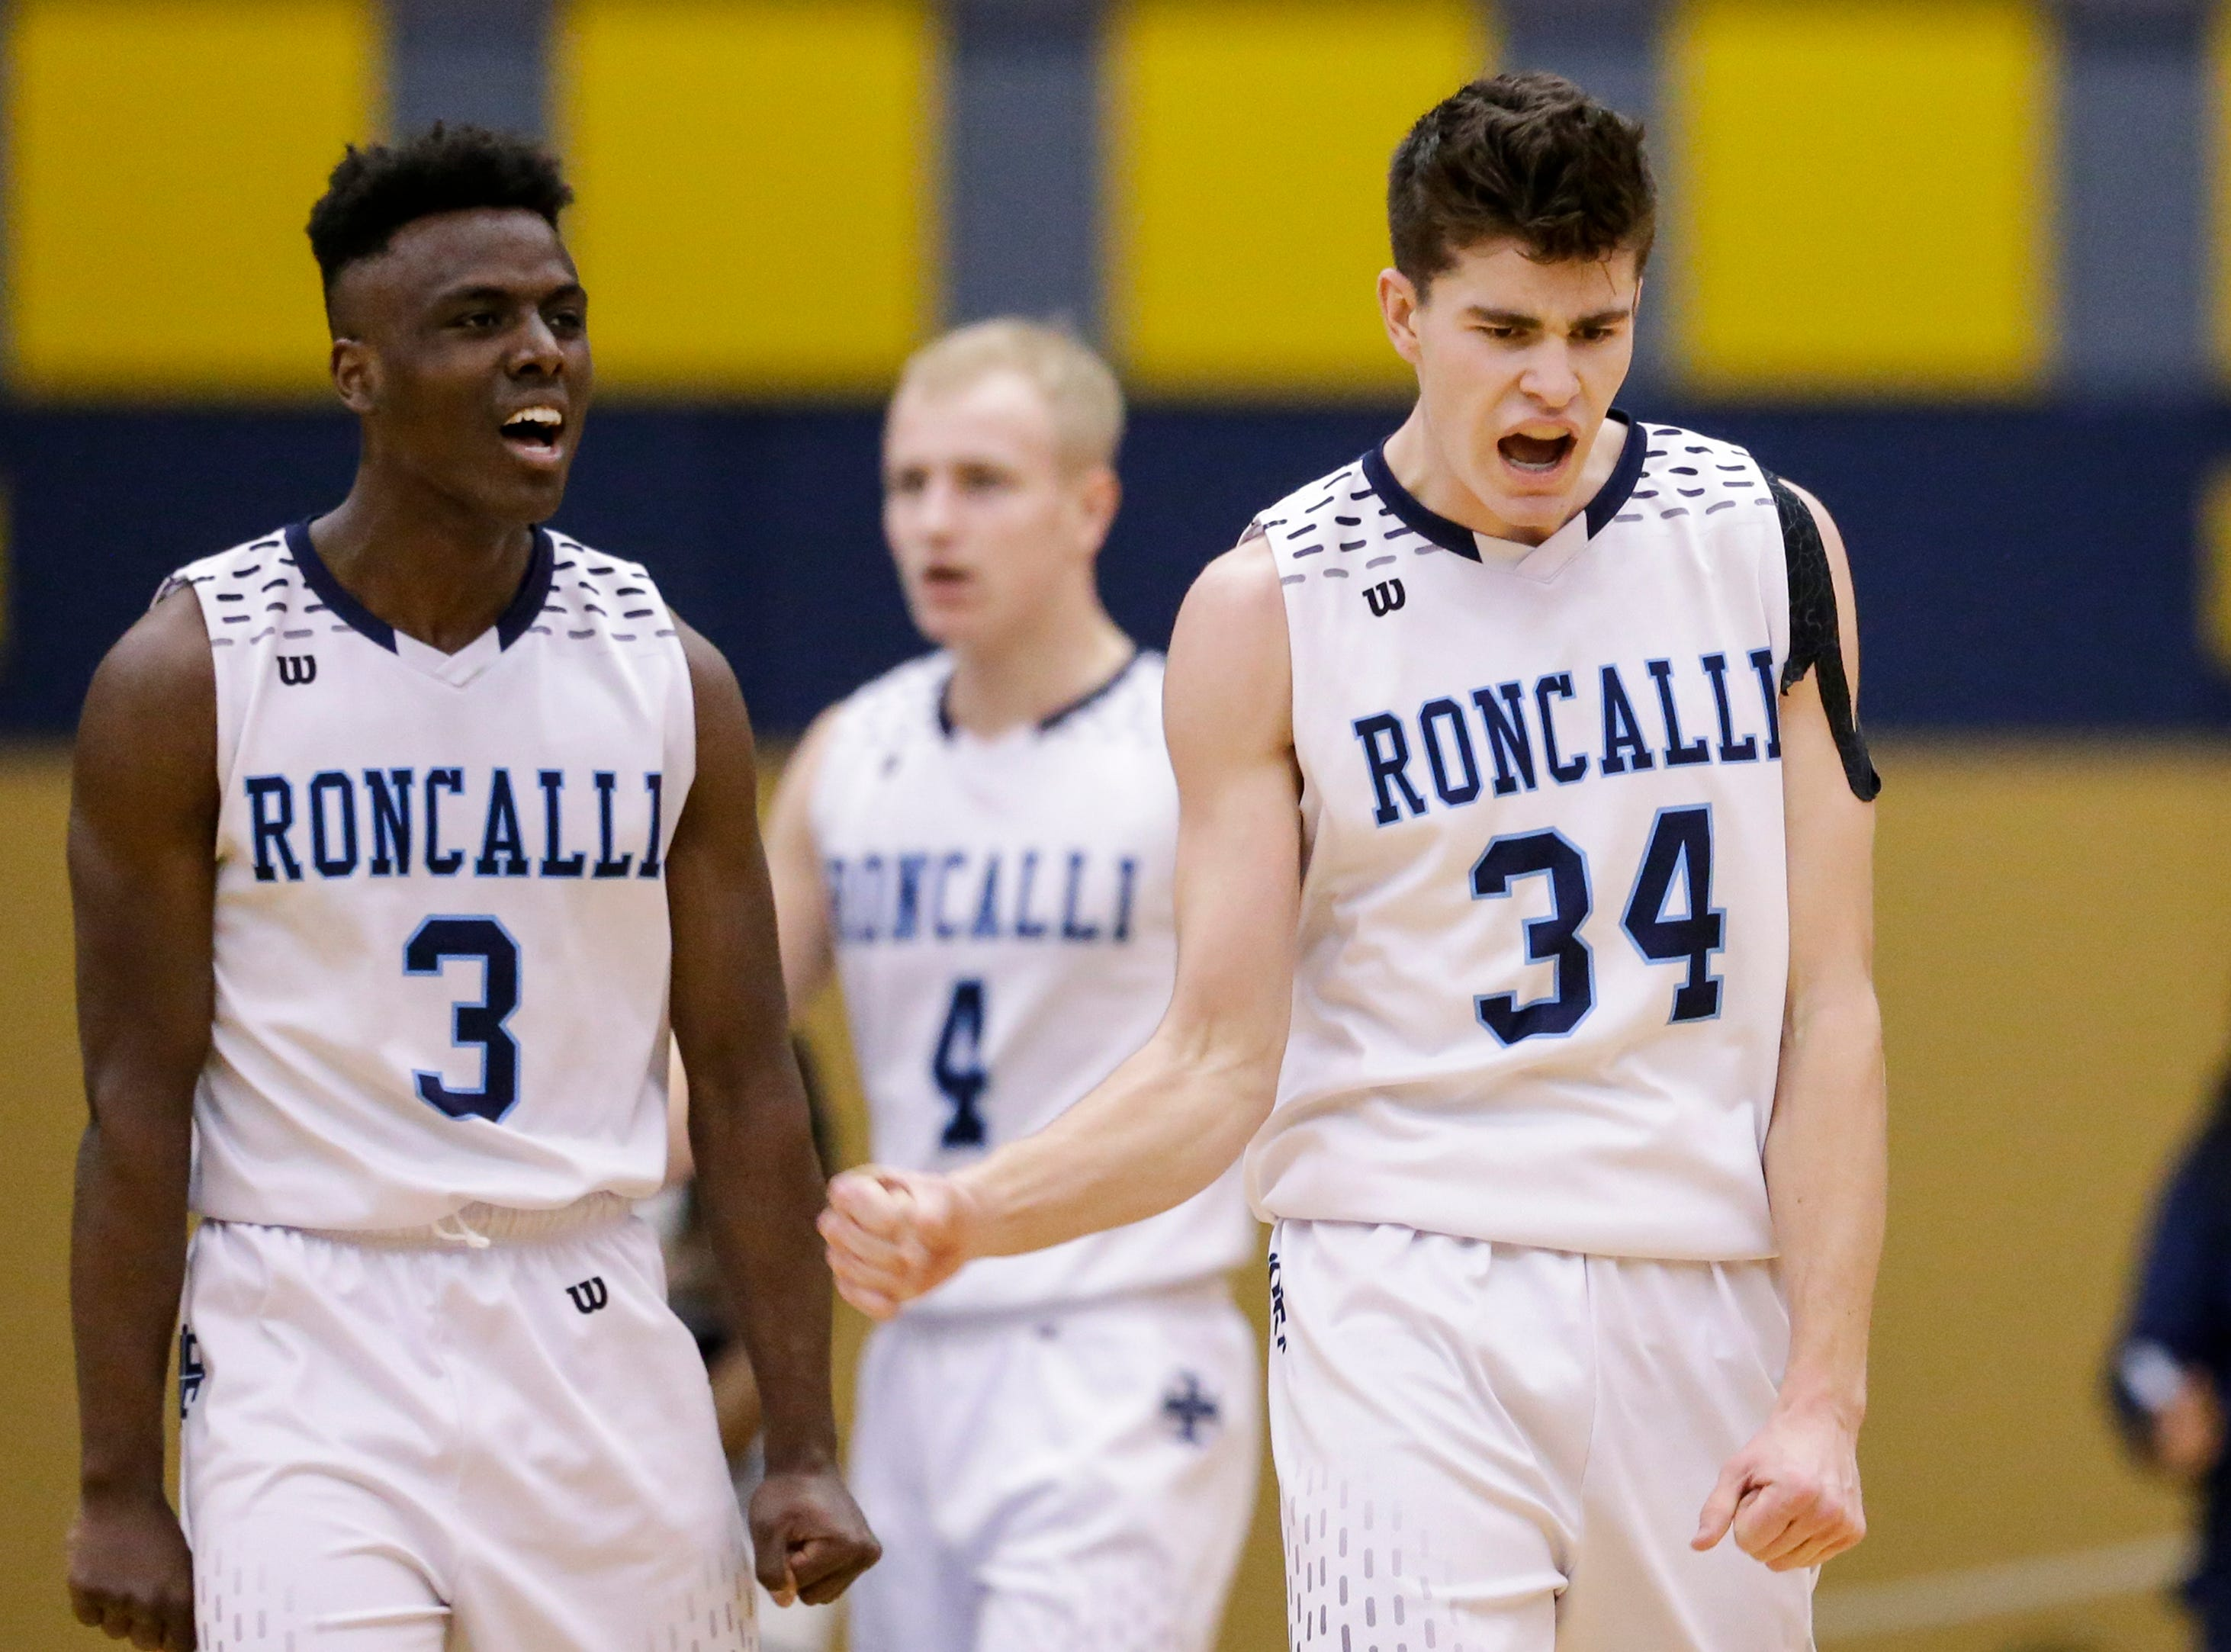 Roncalli's Chombi Lambert (3) and Ian Behringer (34) react after gaining possession over Milwaukee Academy of Science during a WIAA Division 4 sectional championship at Sheboygan North High School Saturday, March 9, 2019, in Sheboygan, Wis. Joshua Clark/USA TODAY NETWORK-Wisconsin